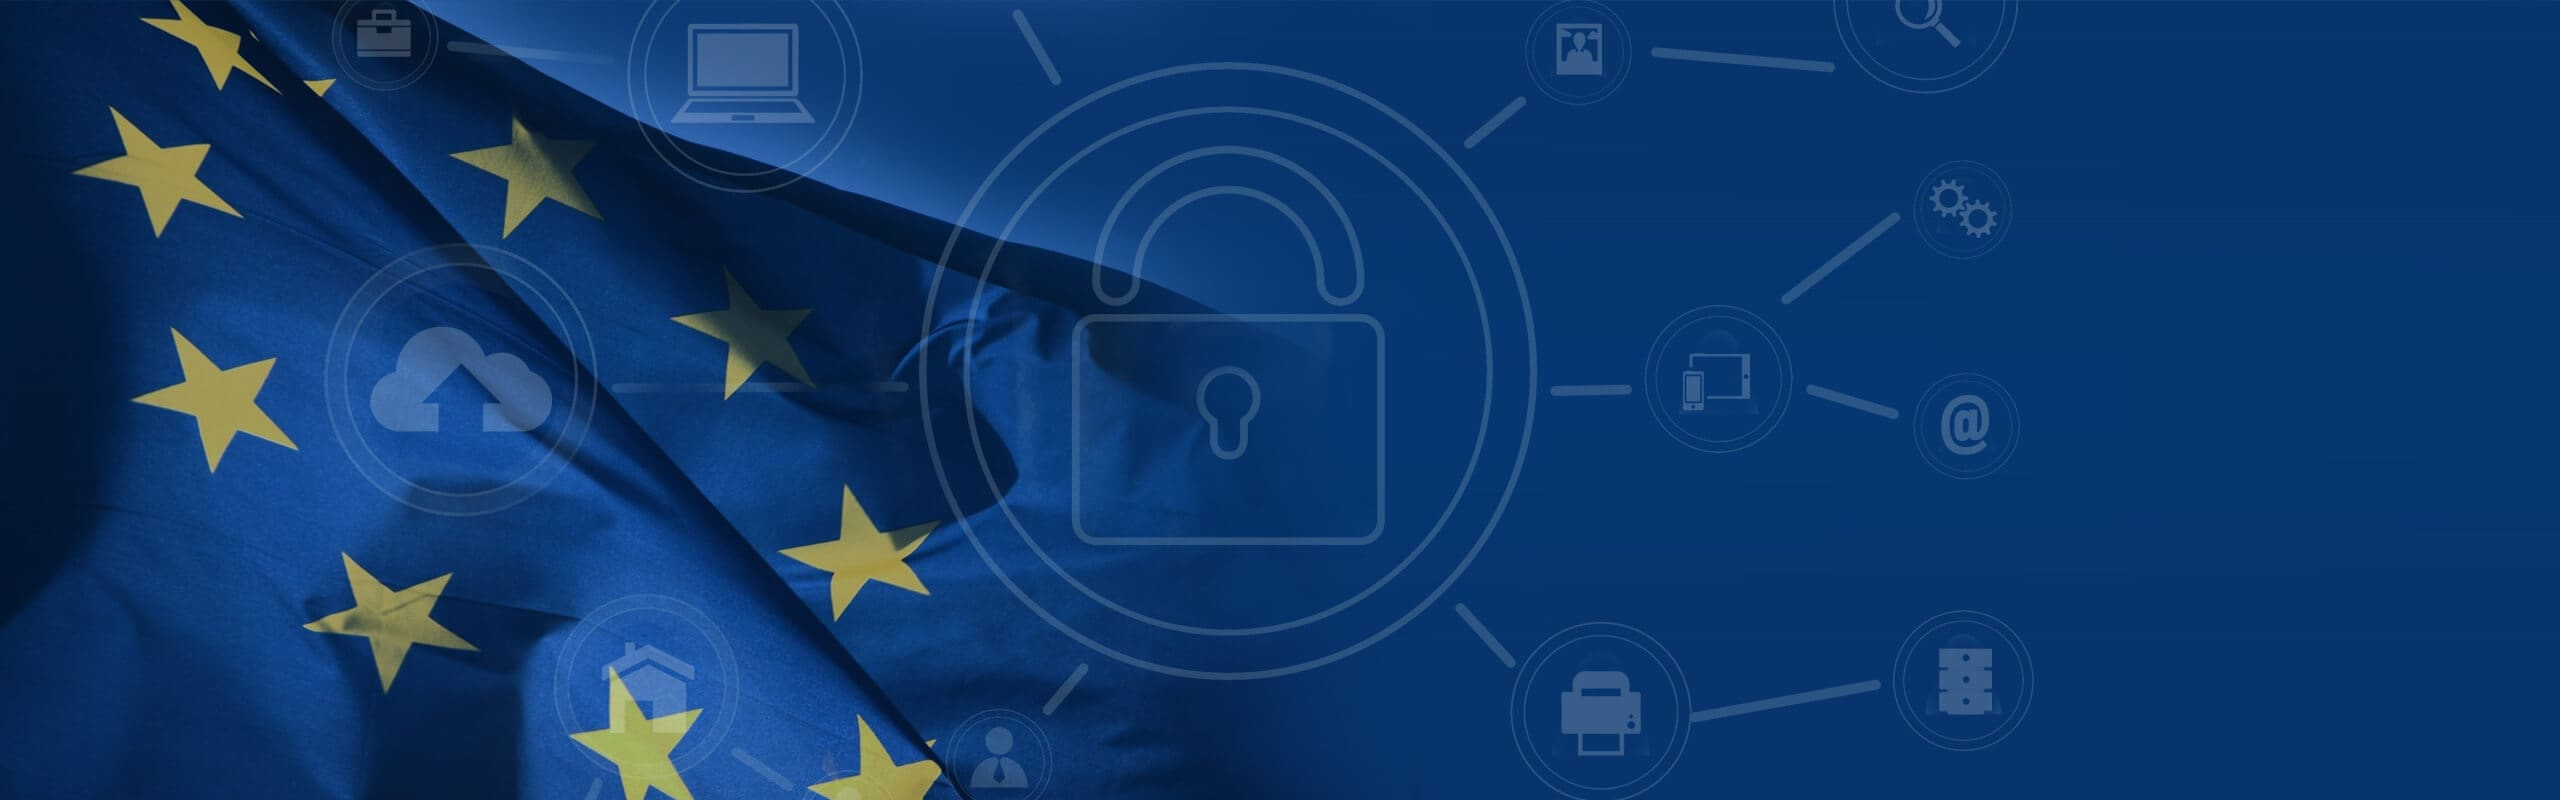 GDPR global data protection regulation